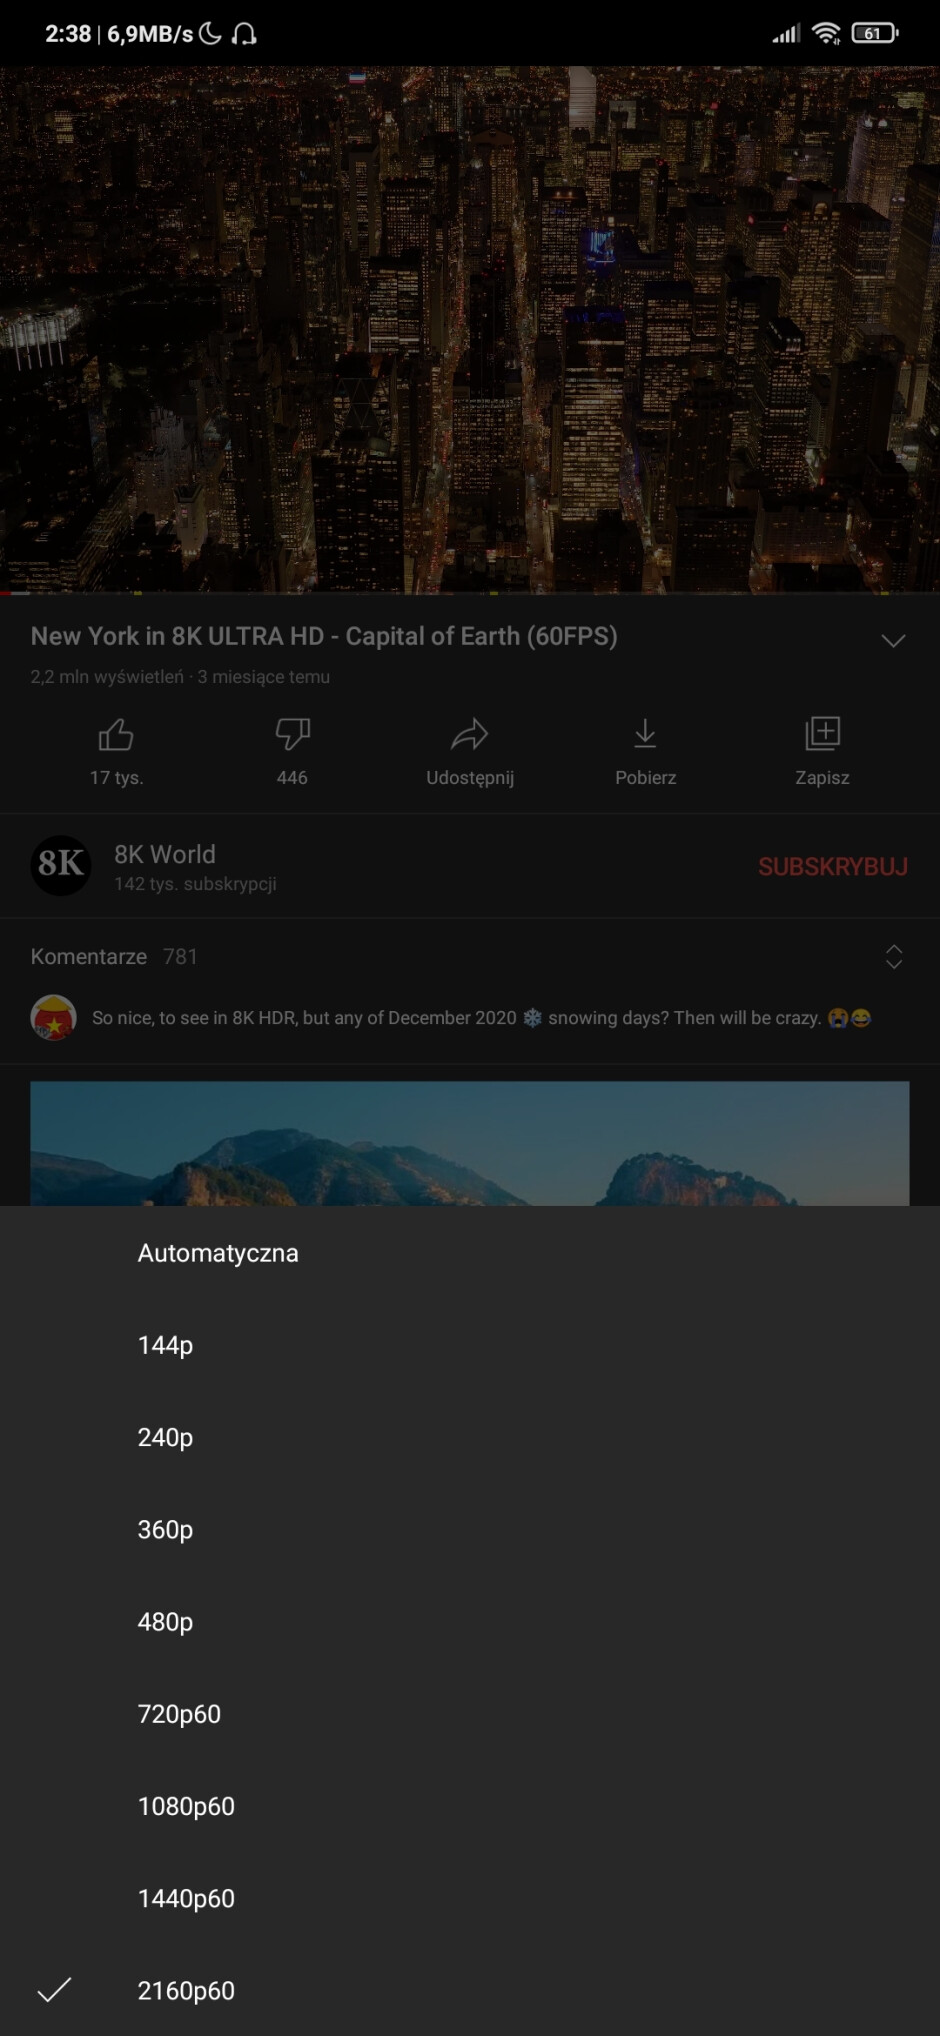 YouTube app can now play 4K HDR videos on Android devices